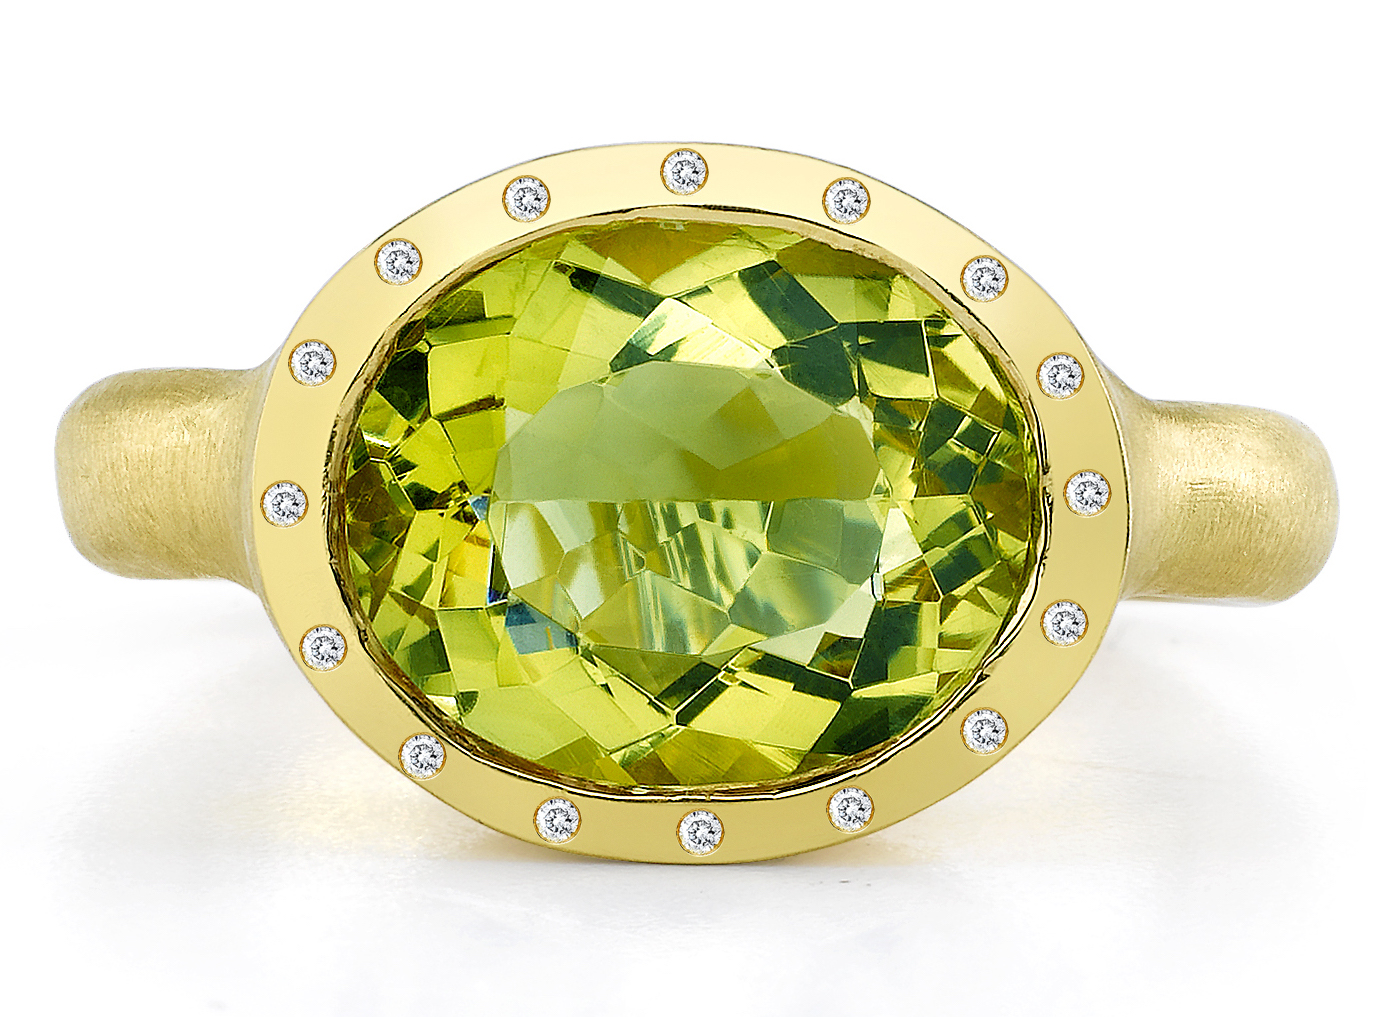 Dorian and Rose yellow-green beryl ring #BRITTSPICK | JCK On Your Market